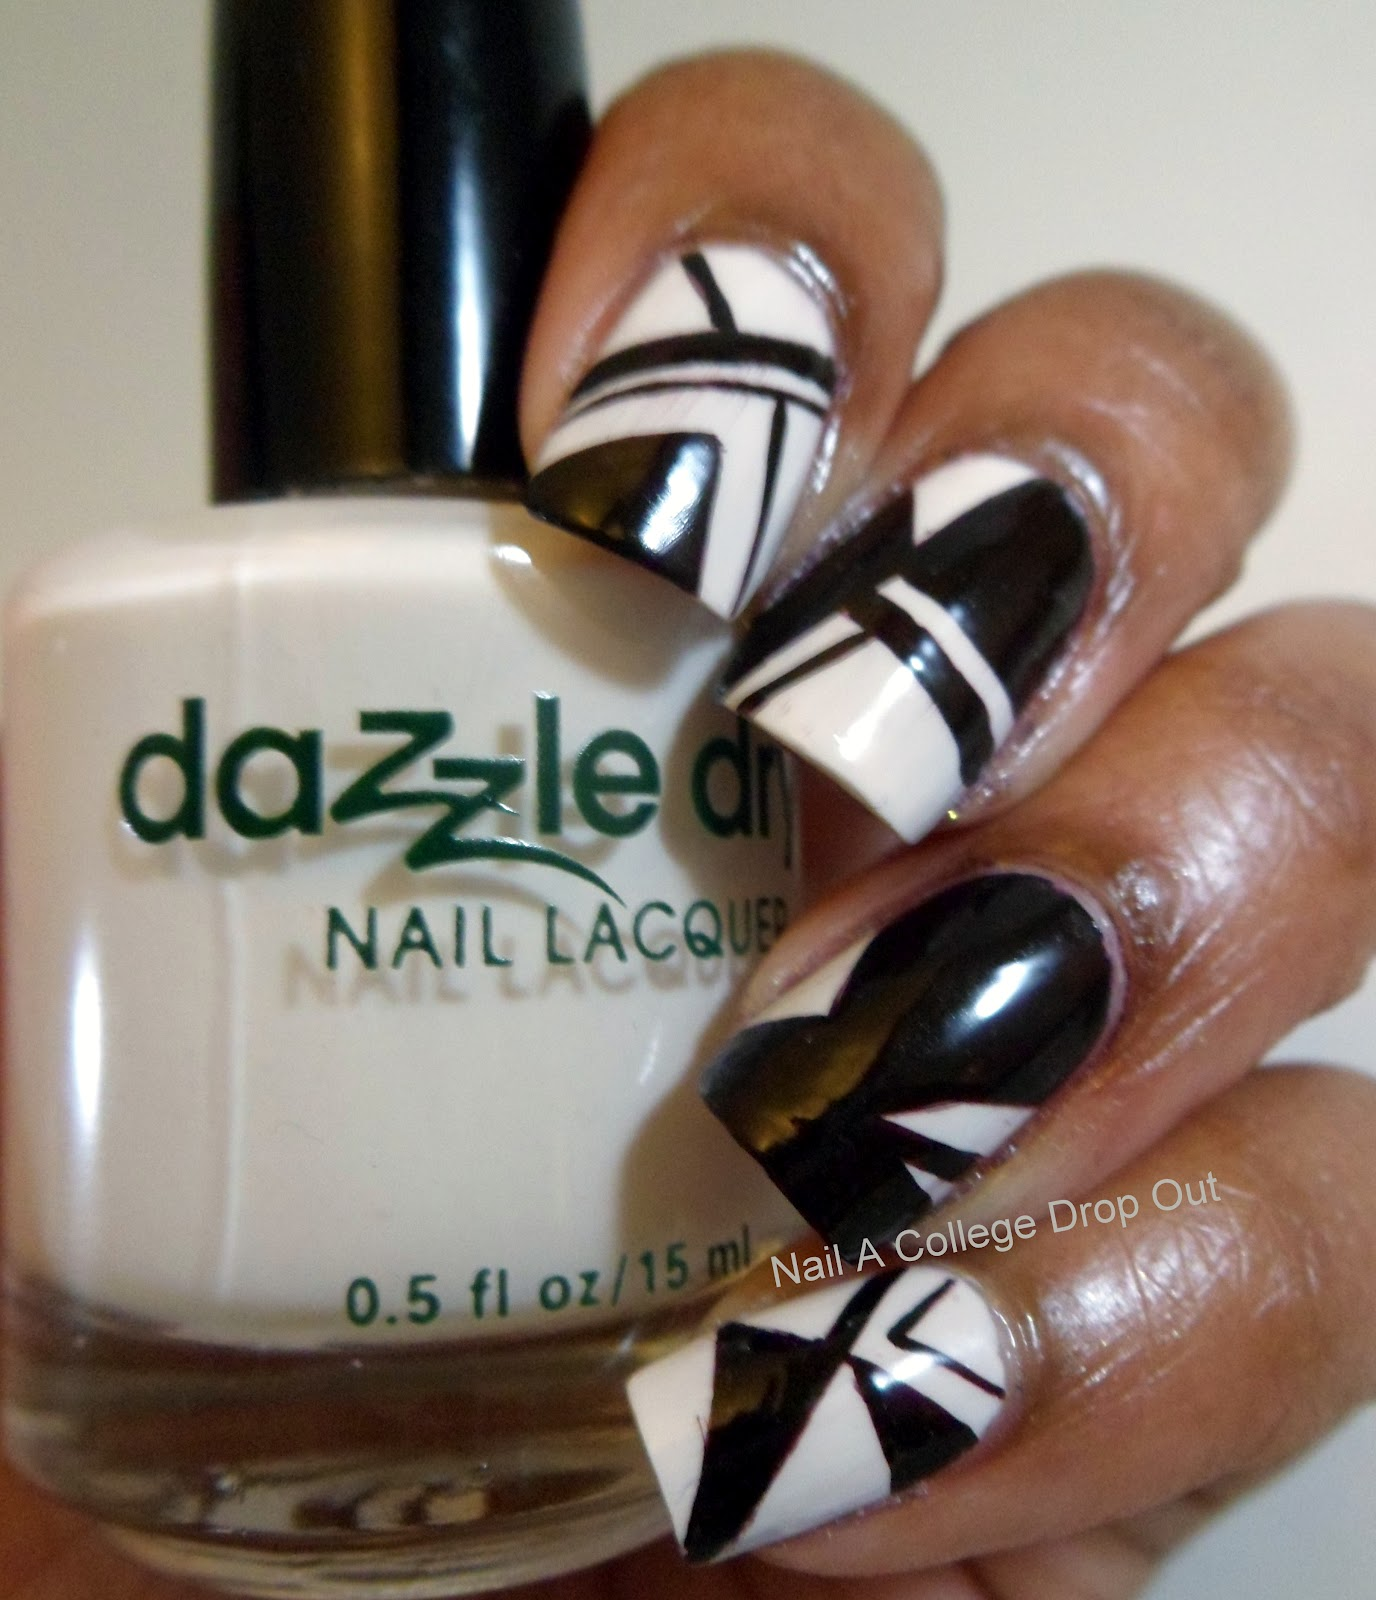 Nail A College Drop Out: Dazzle Dry Renaissance of Romance Nail Art ...